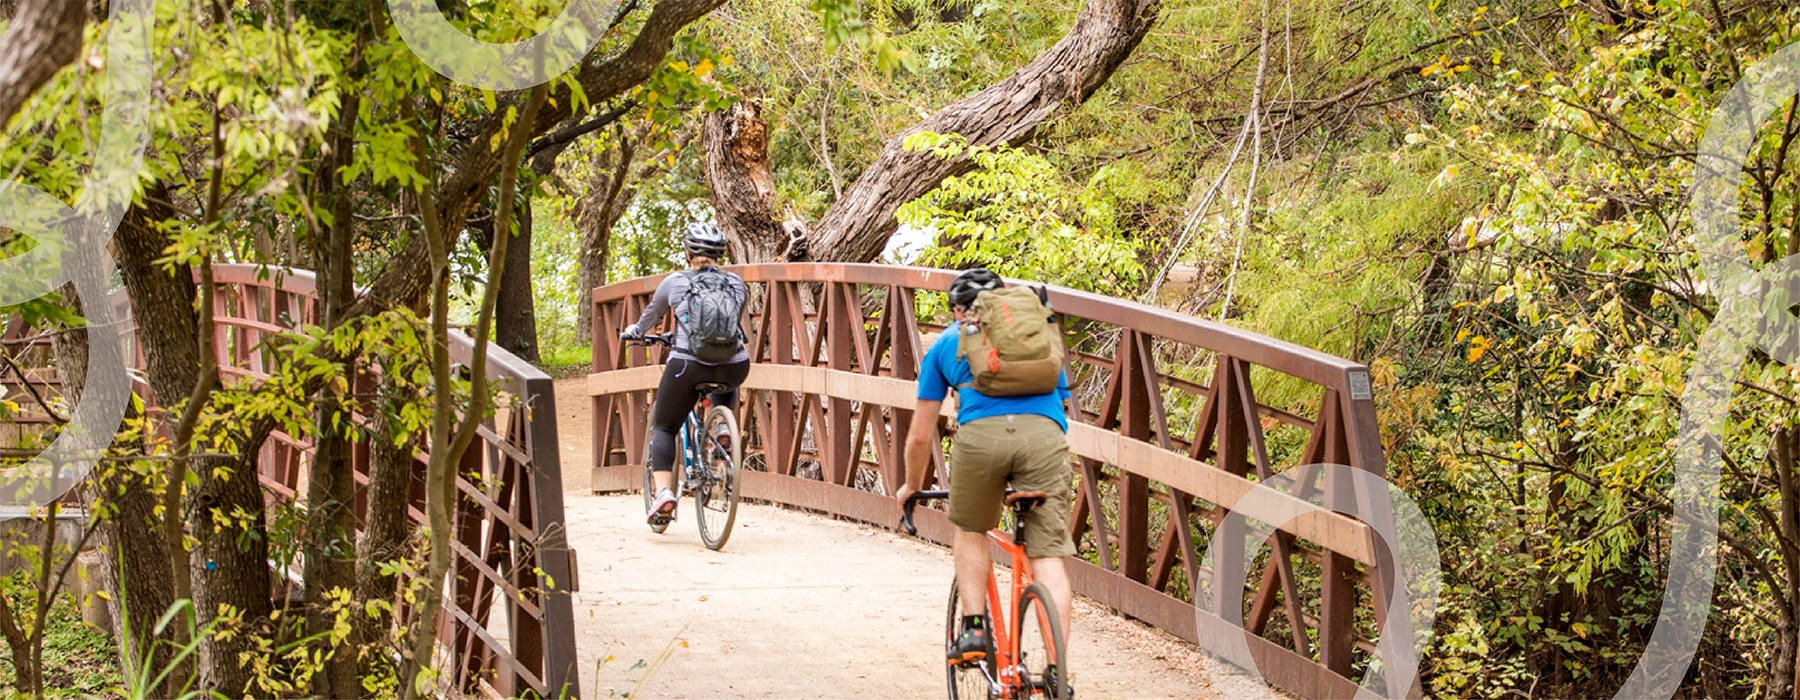 edited graphic showing people riding their bicycles over a bridge with lush greenery surrounding the area